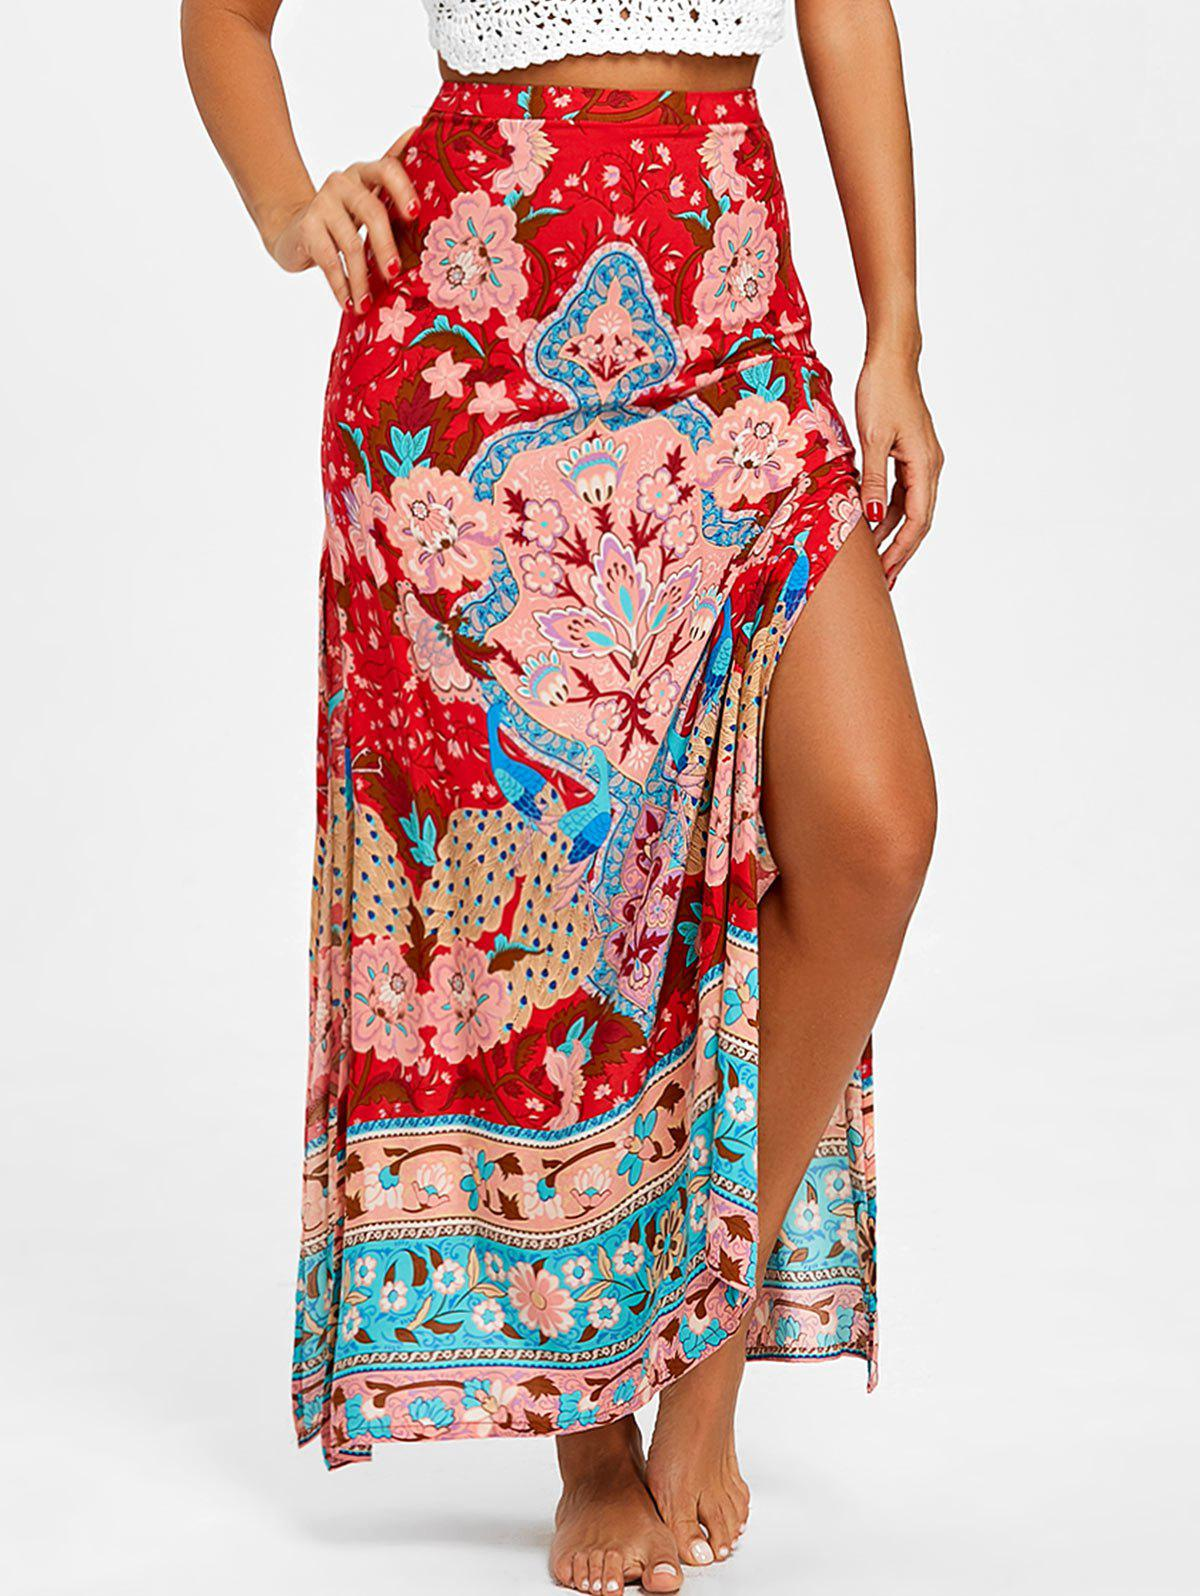 Affordable Bohemian Flower Print High Slit Skirt